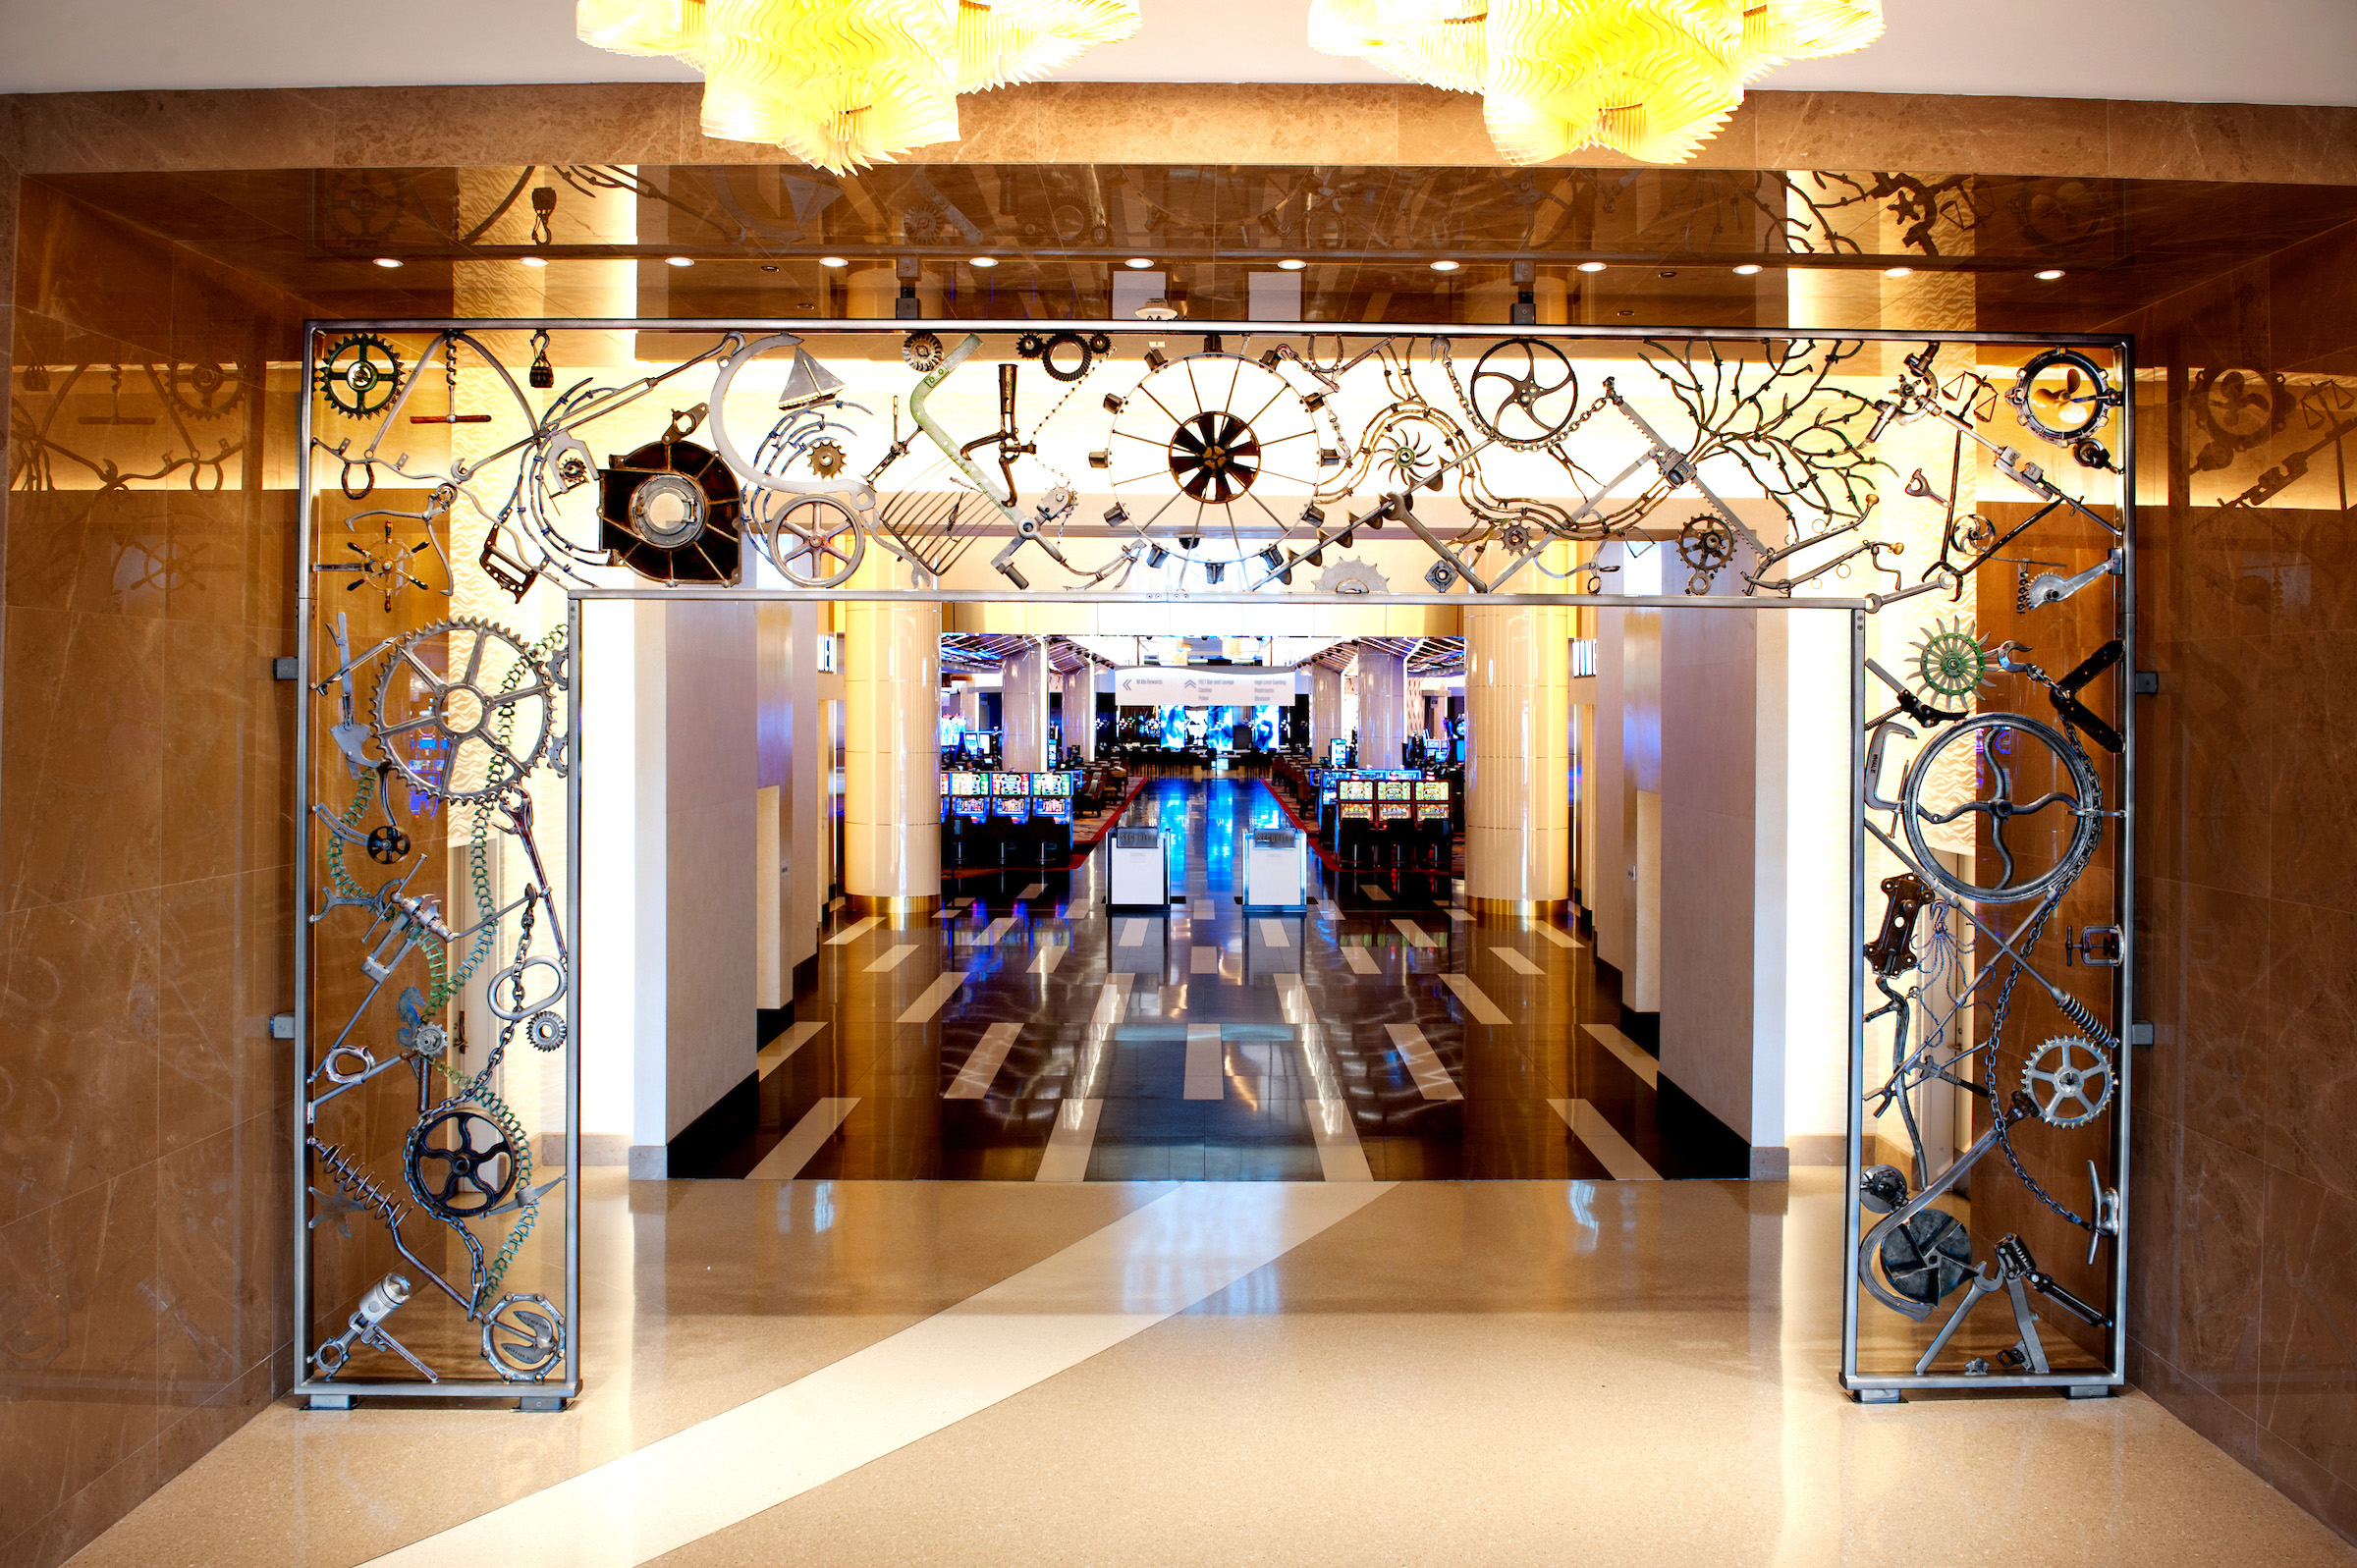 Vegas On The Potomac: Mgm National Harbor Opens Today